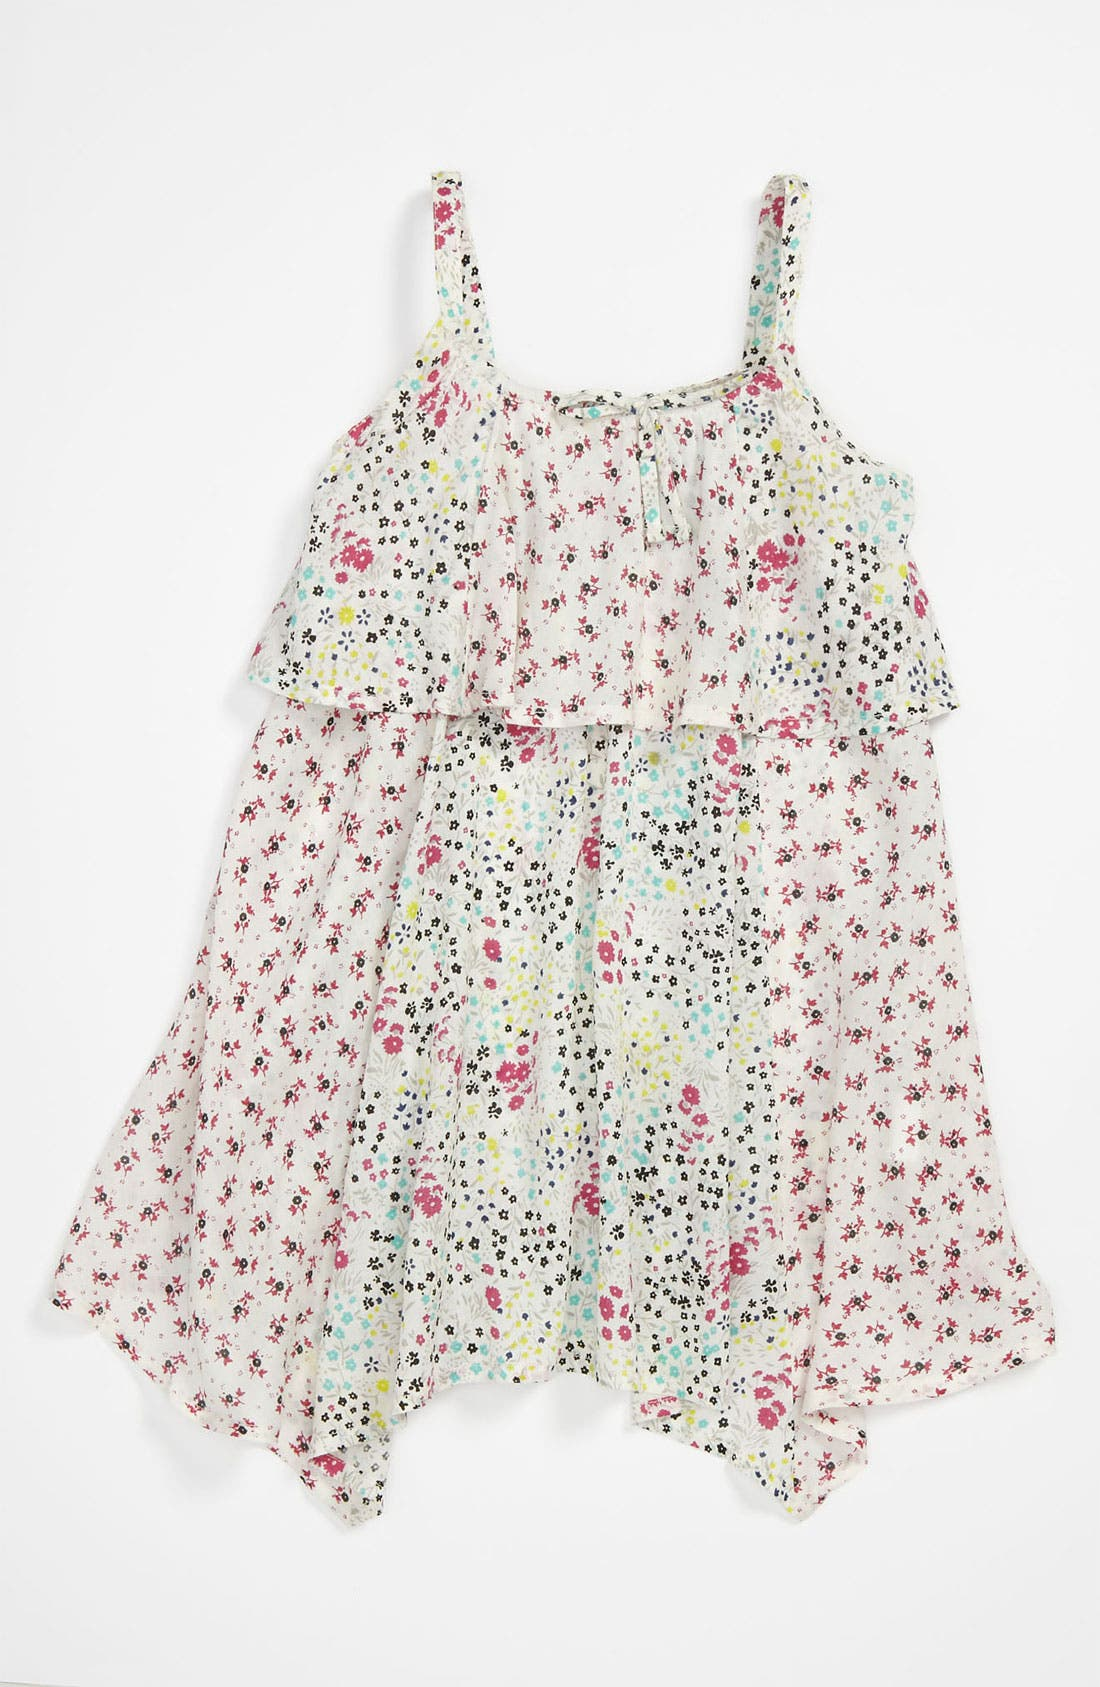 Alternate Image 1 Selected - Roxy 'See Me Out' Woven Tank Dress (Little Girls)